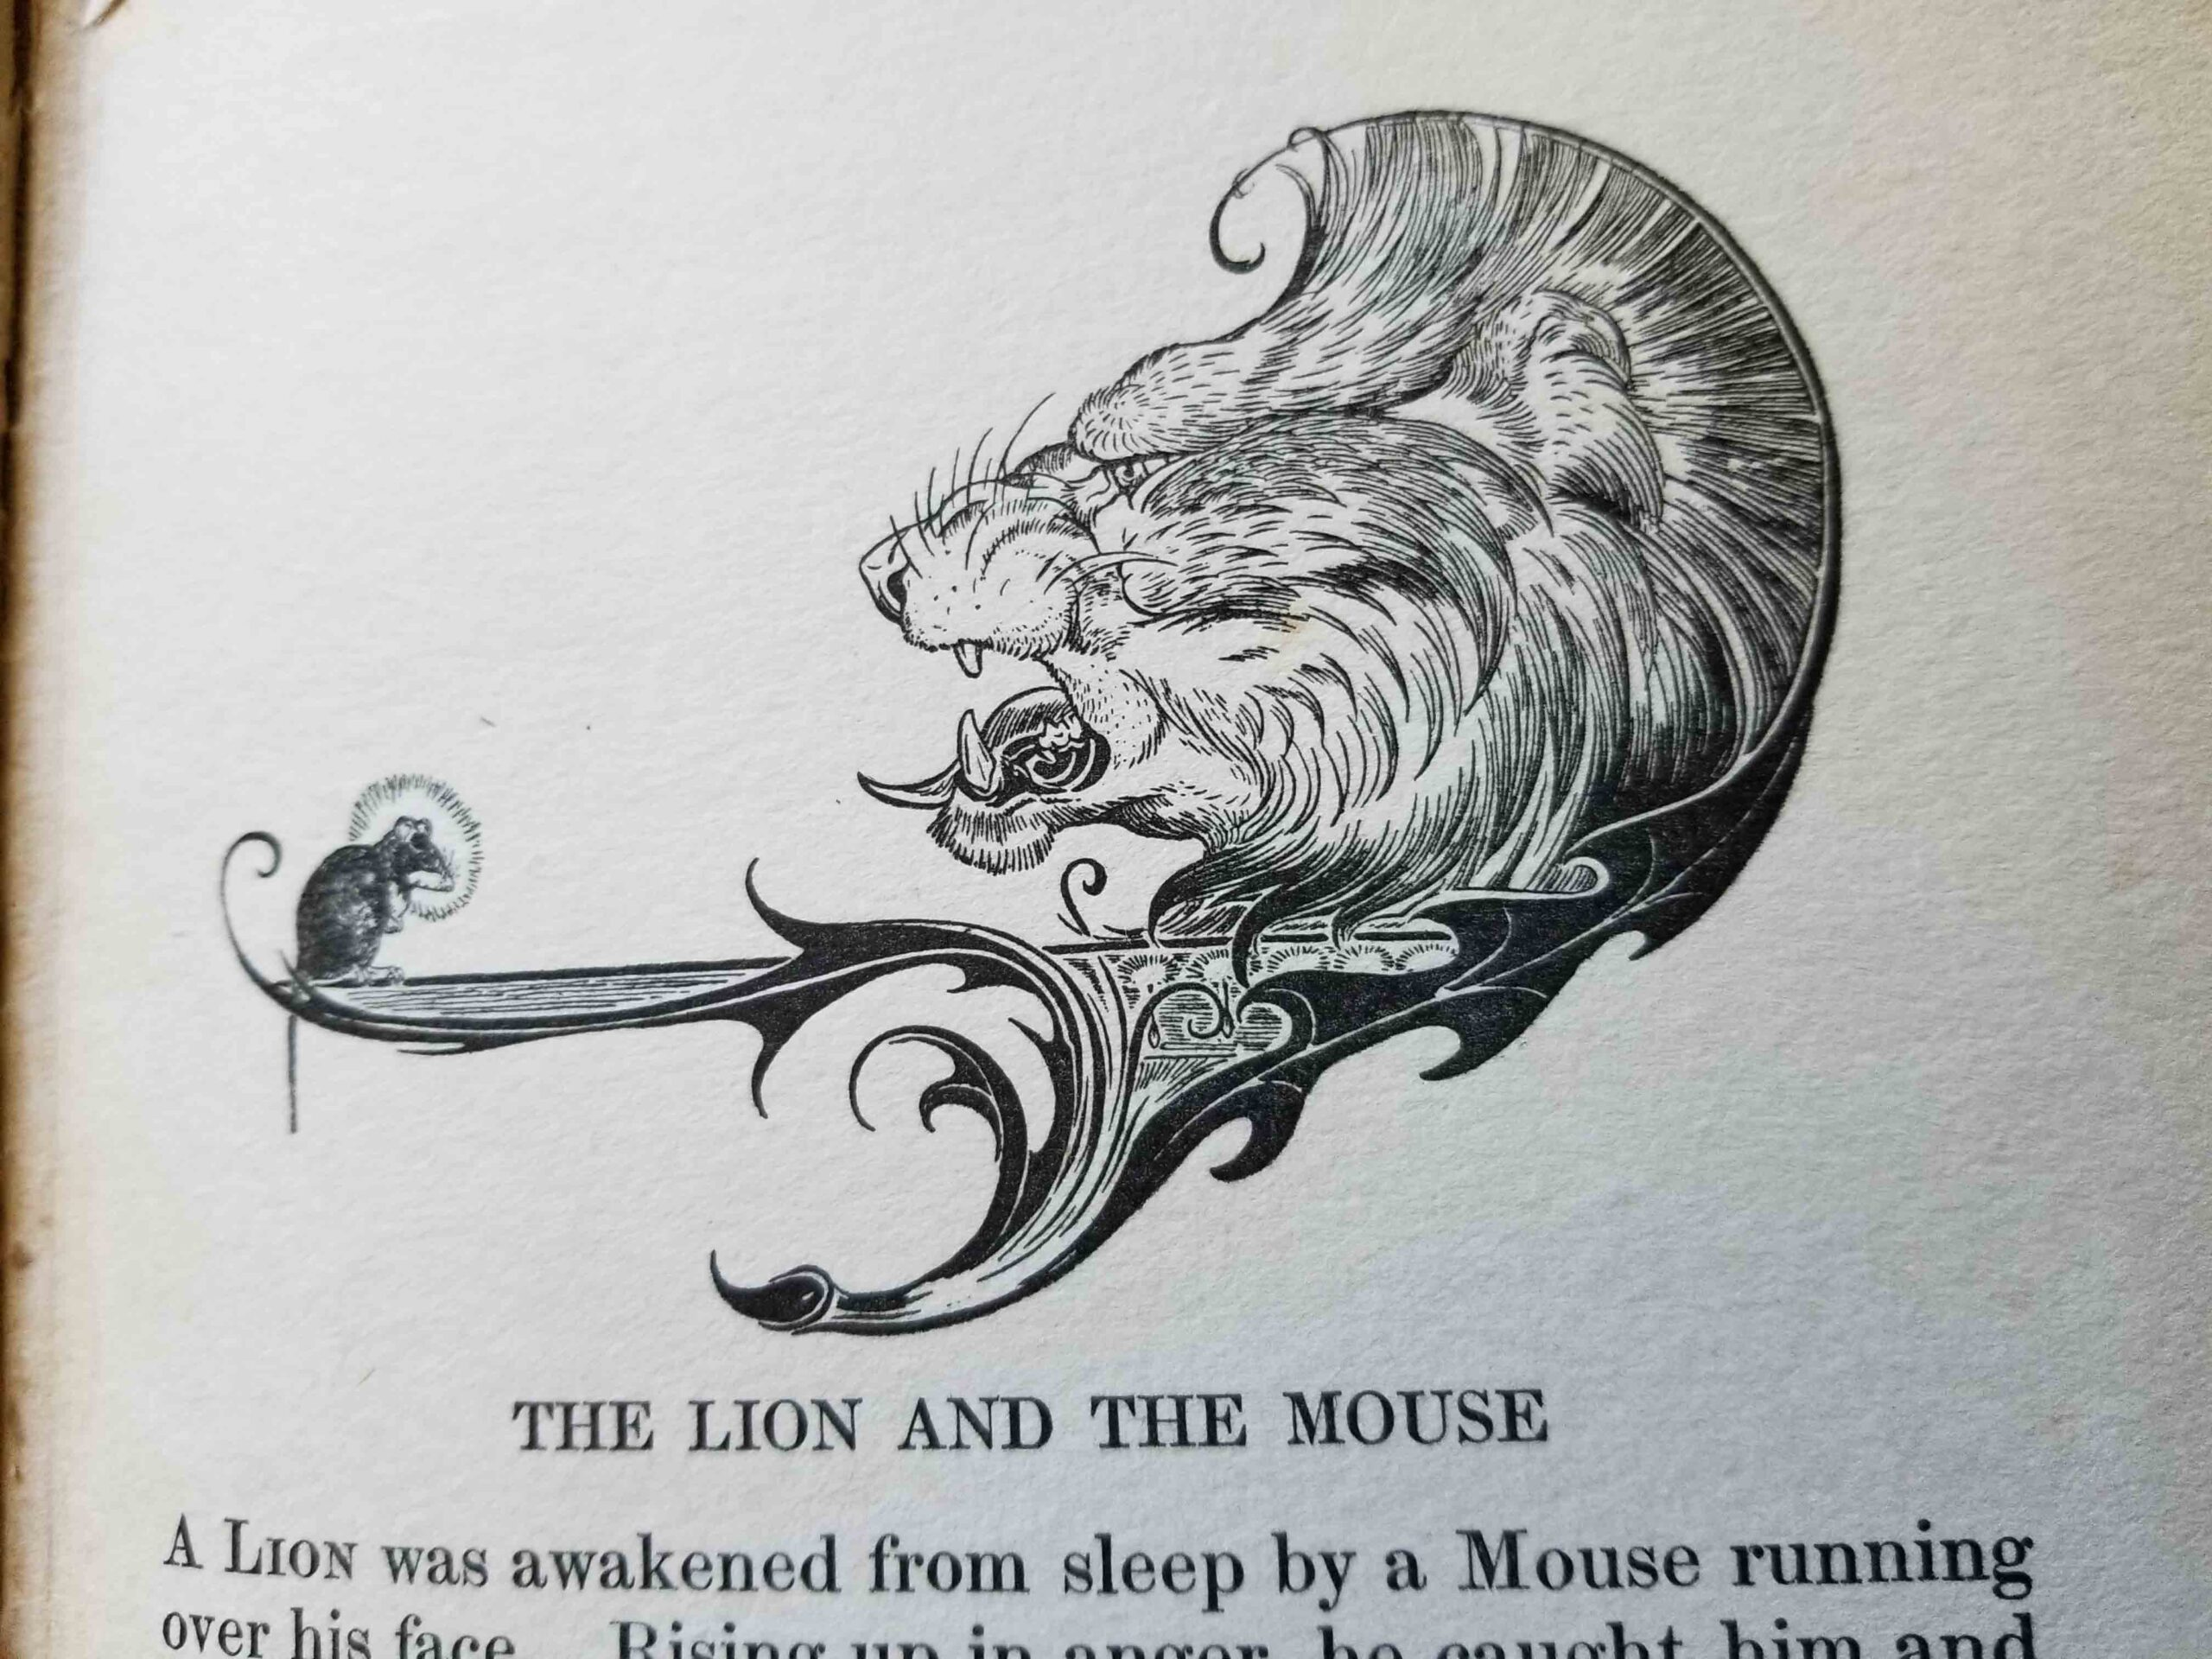 What Can Business Leaders Learn from Aesop's Fables?